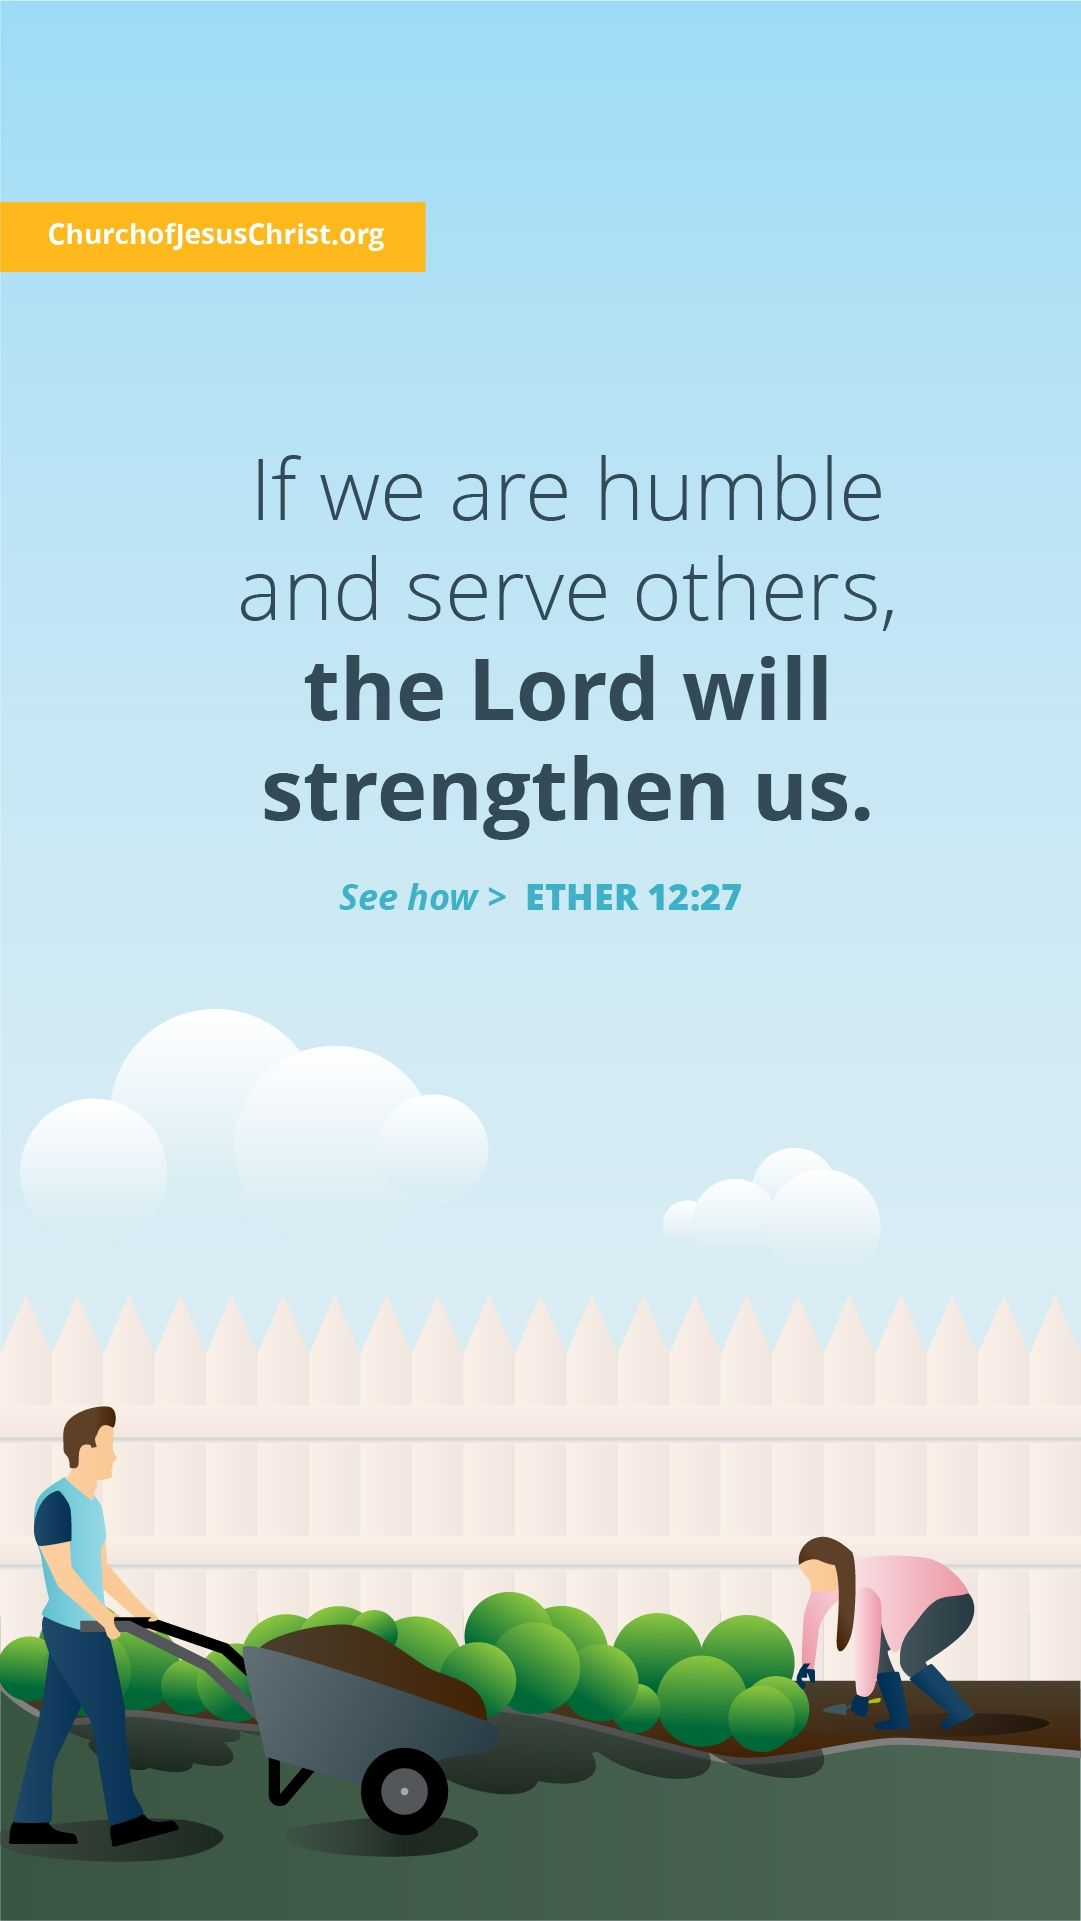 If we are humble and serve others, the Lord will strengthen us. — See Ether 12:27